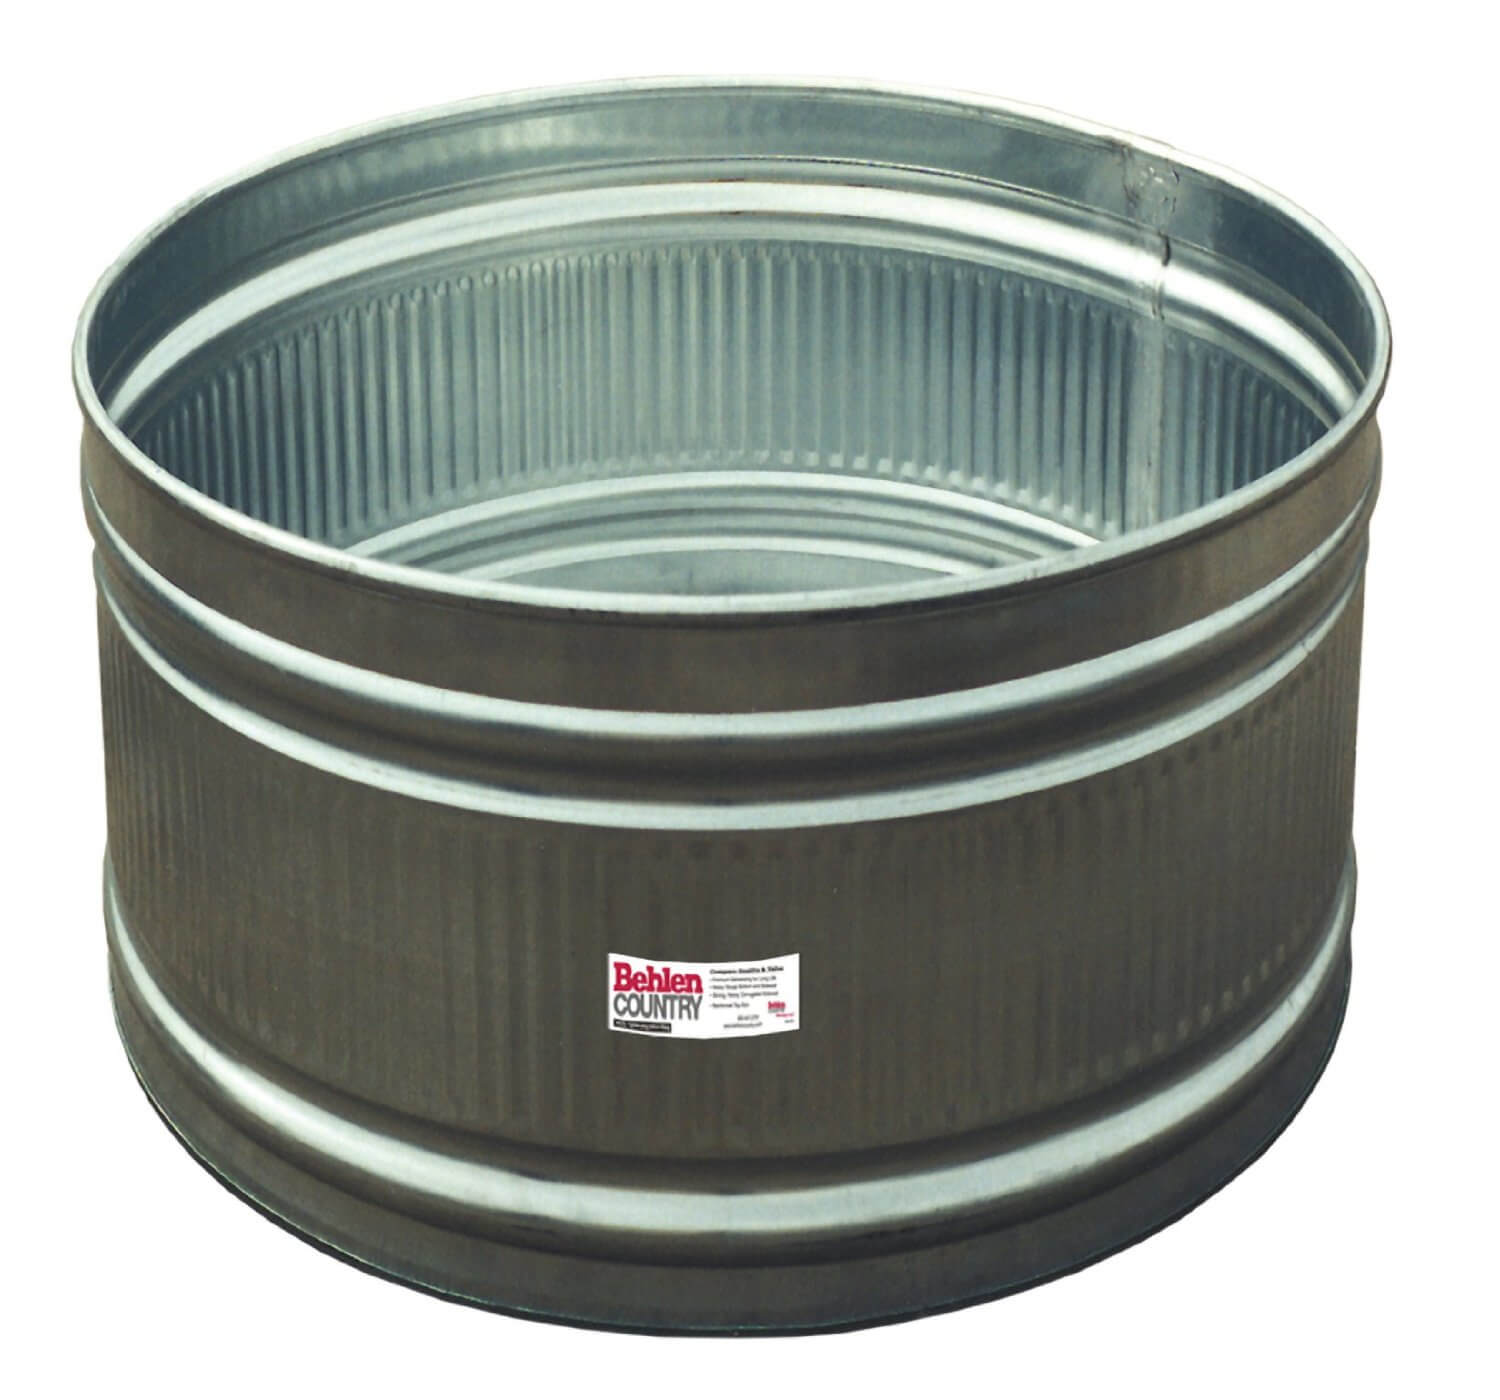 Completely new Galvanized Water Trough Planters • Insteading JL89